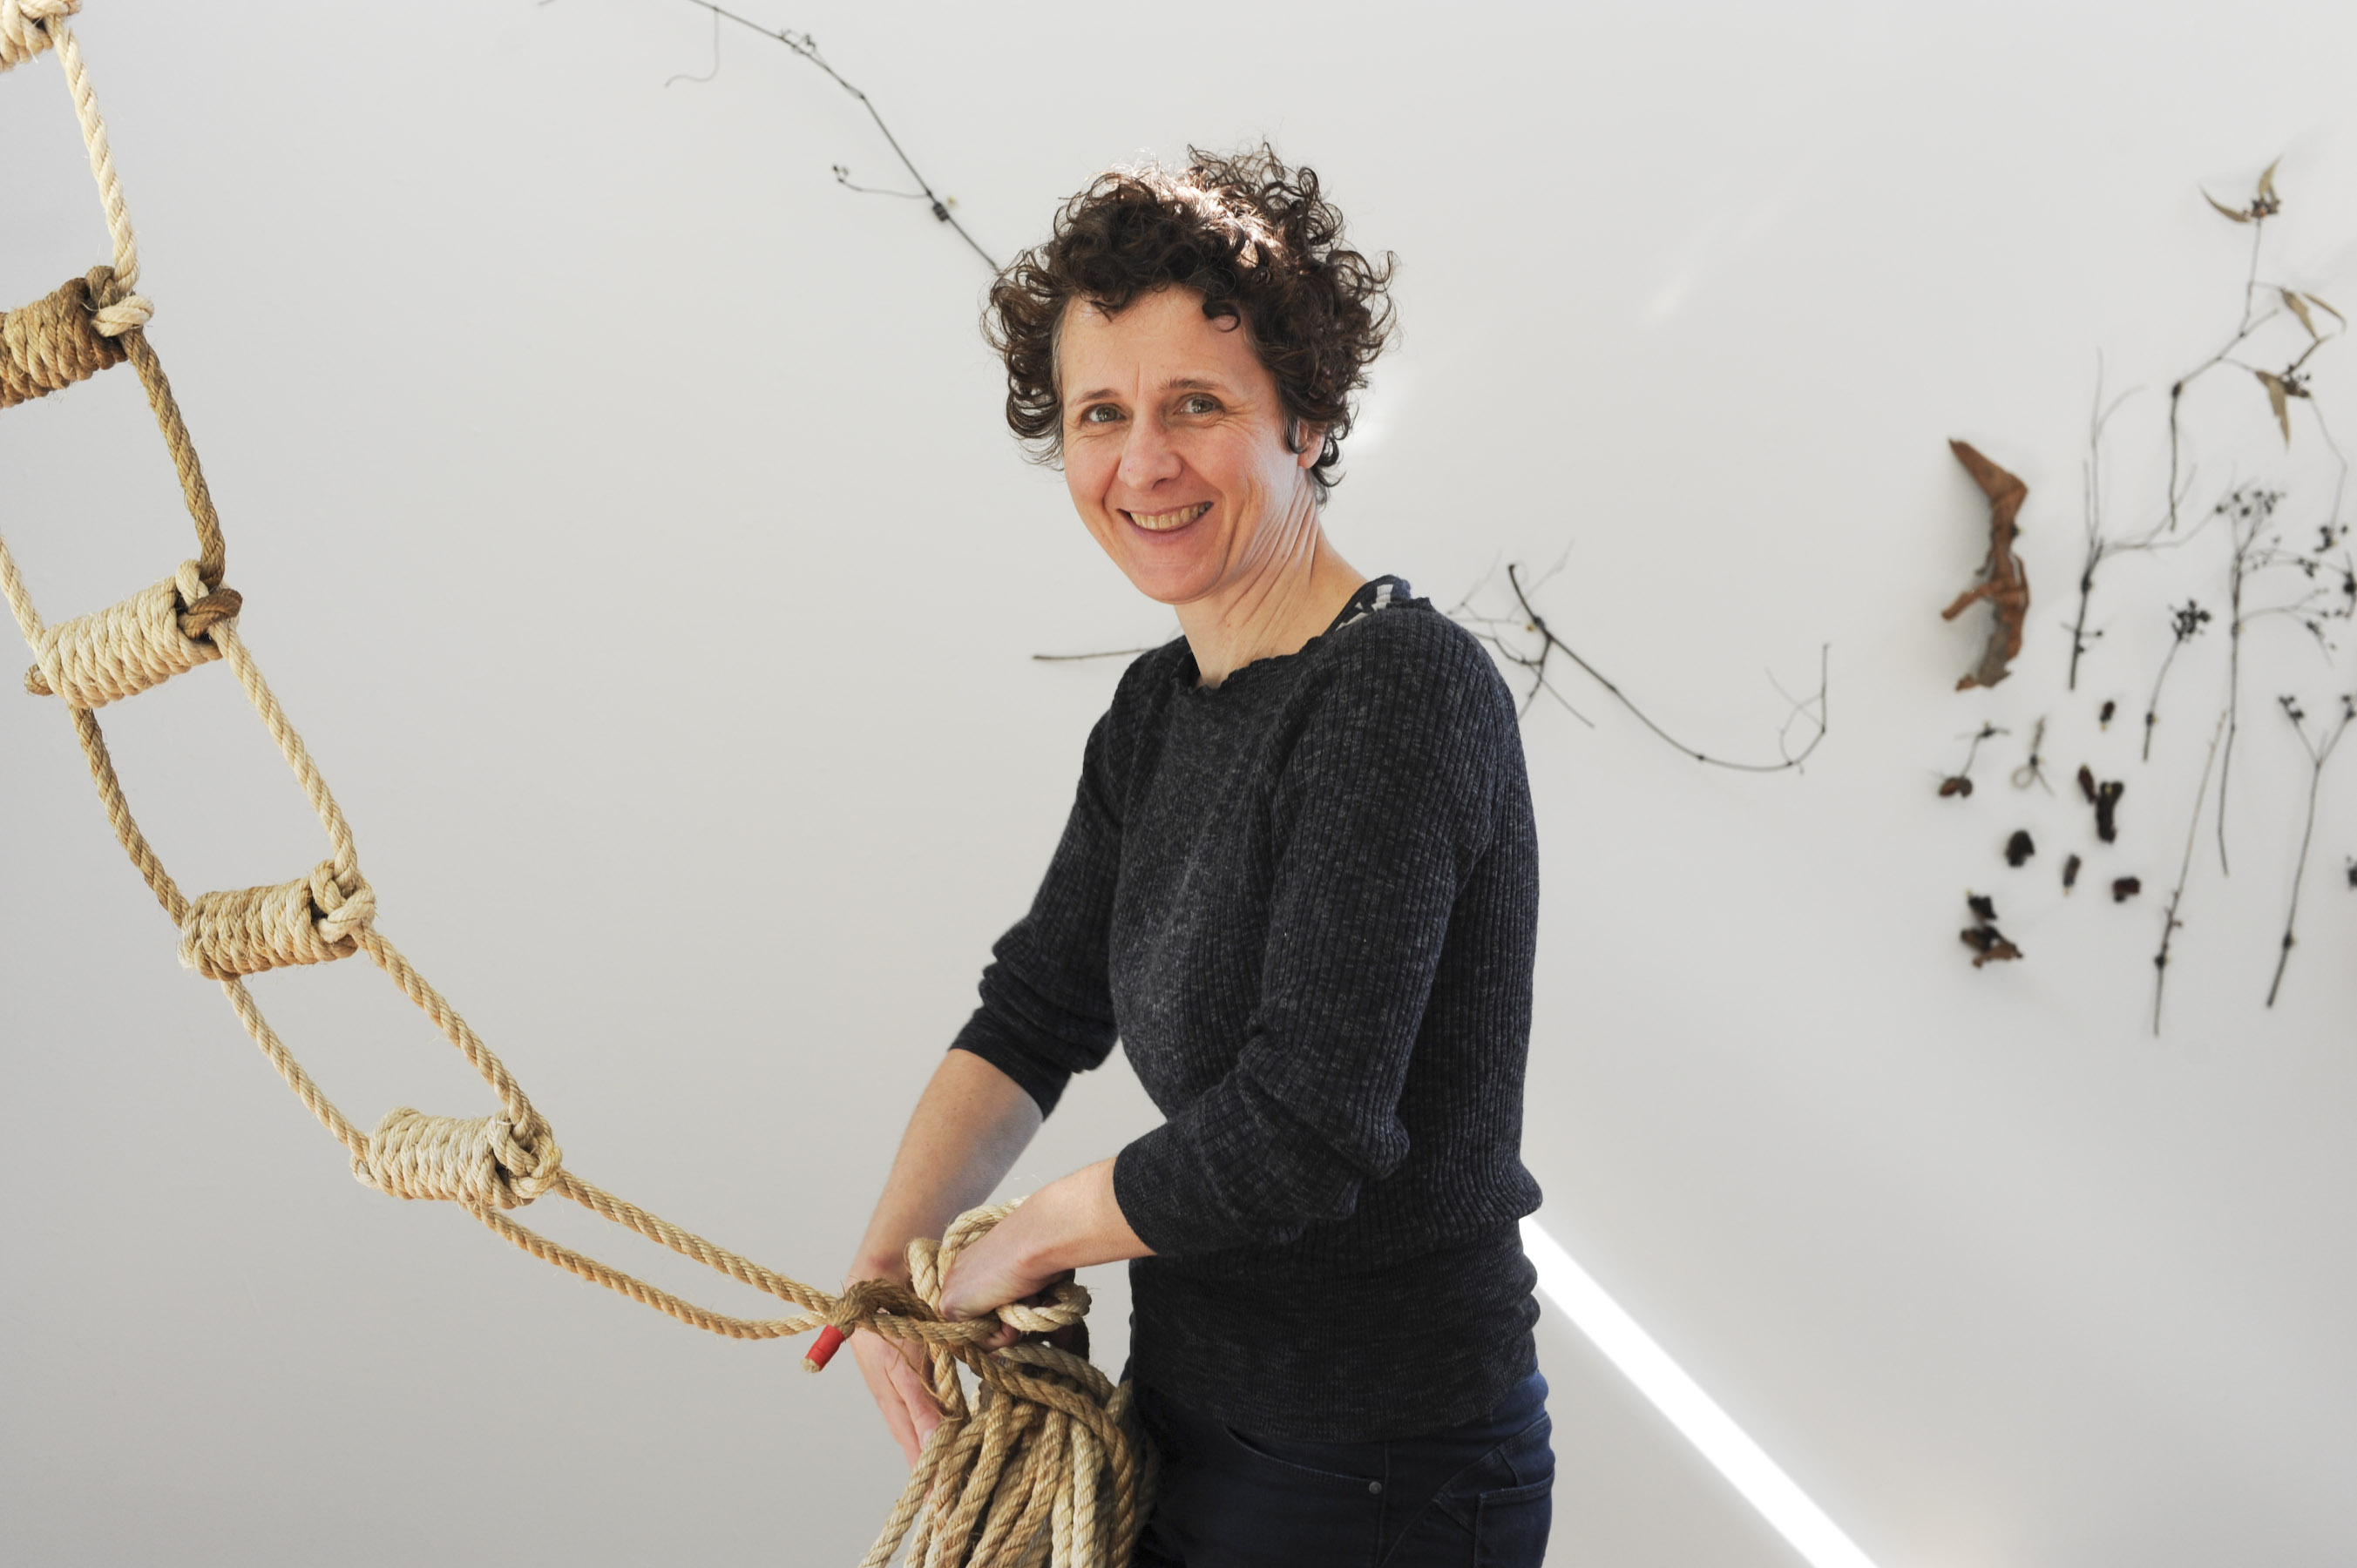 Art meets science as residency recipient is revealed